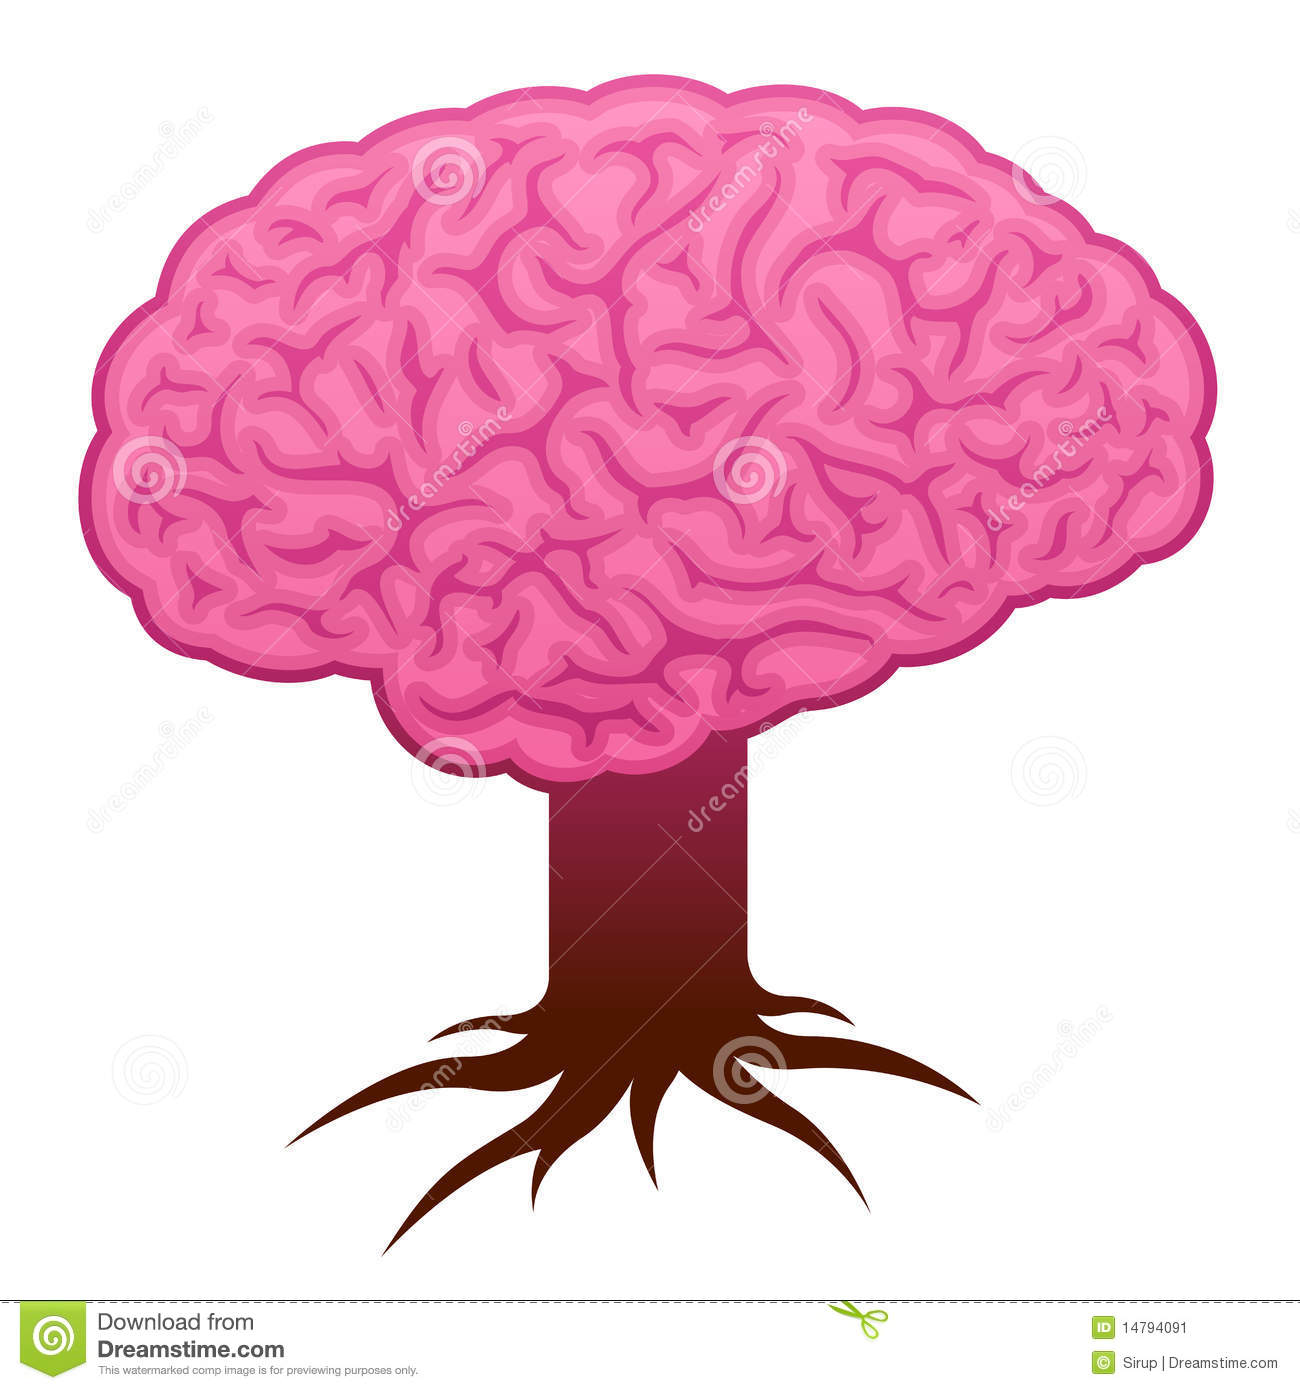 Brain Stem / Cerebellum / Optical Nerve / Female Brain Anatomy.